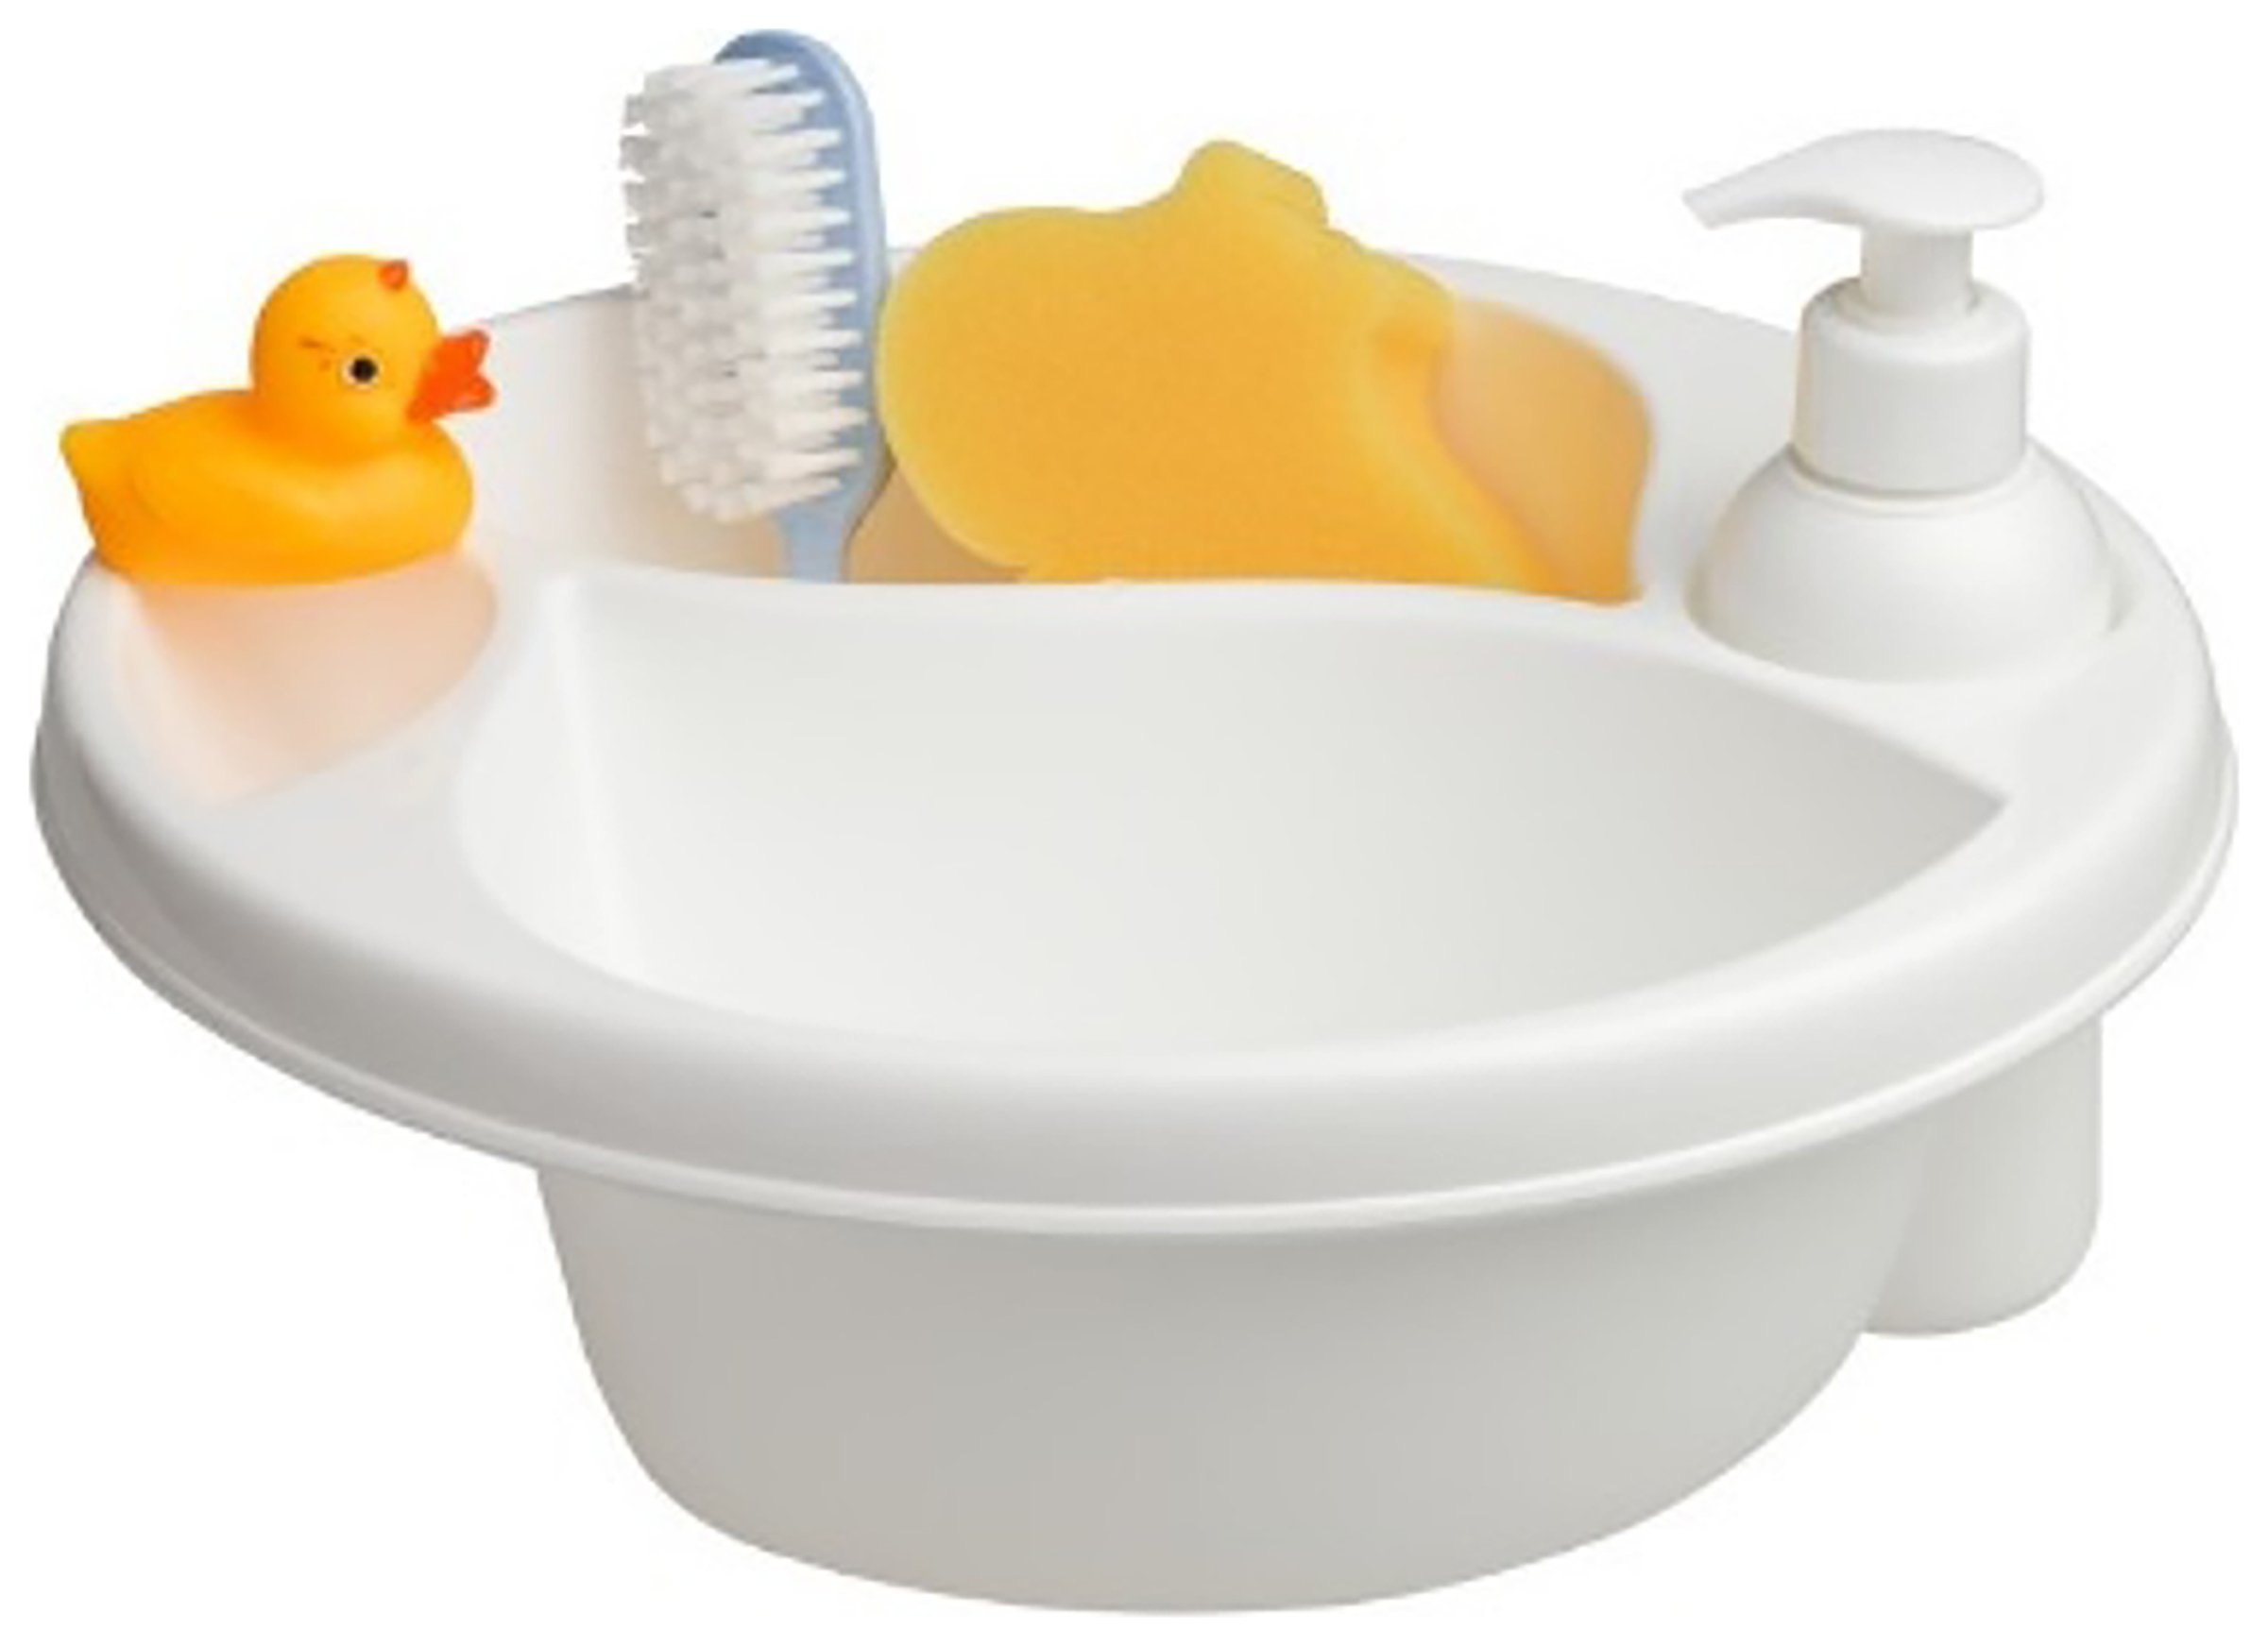 Image of Maltex Top & Tail Bath Bowl Baby Gift Set - White